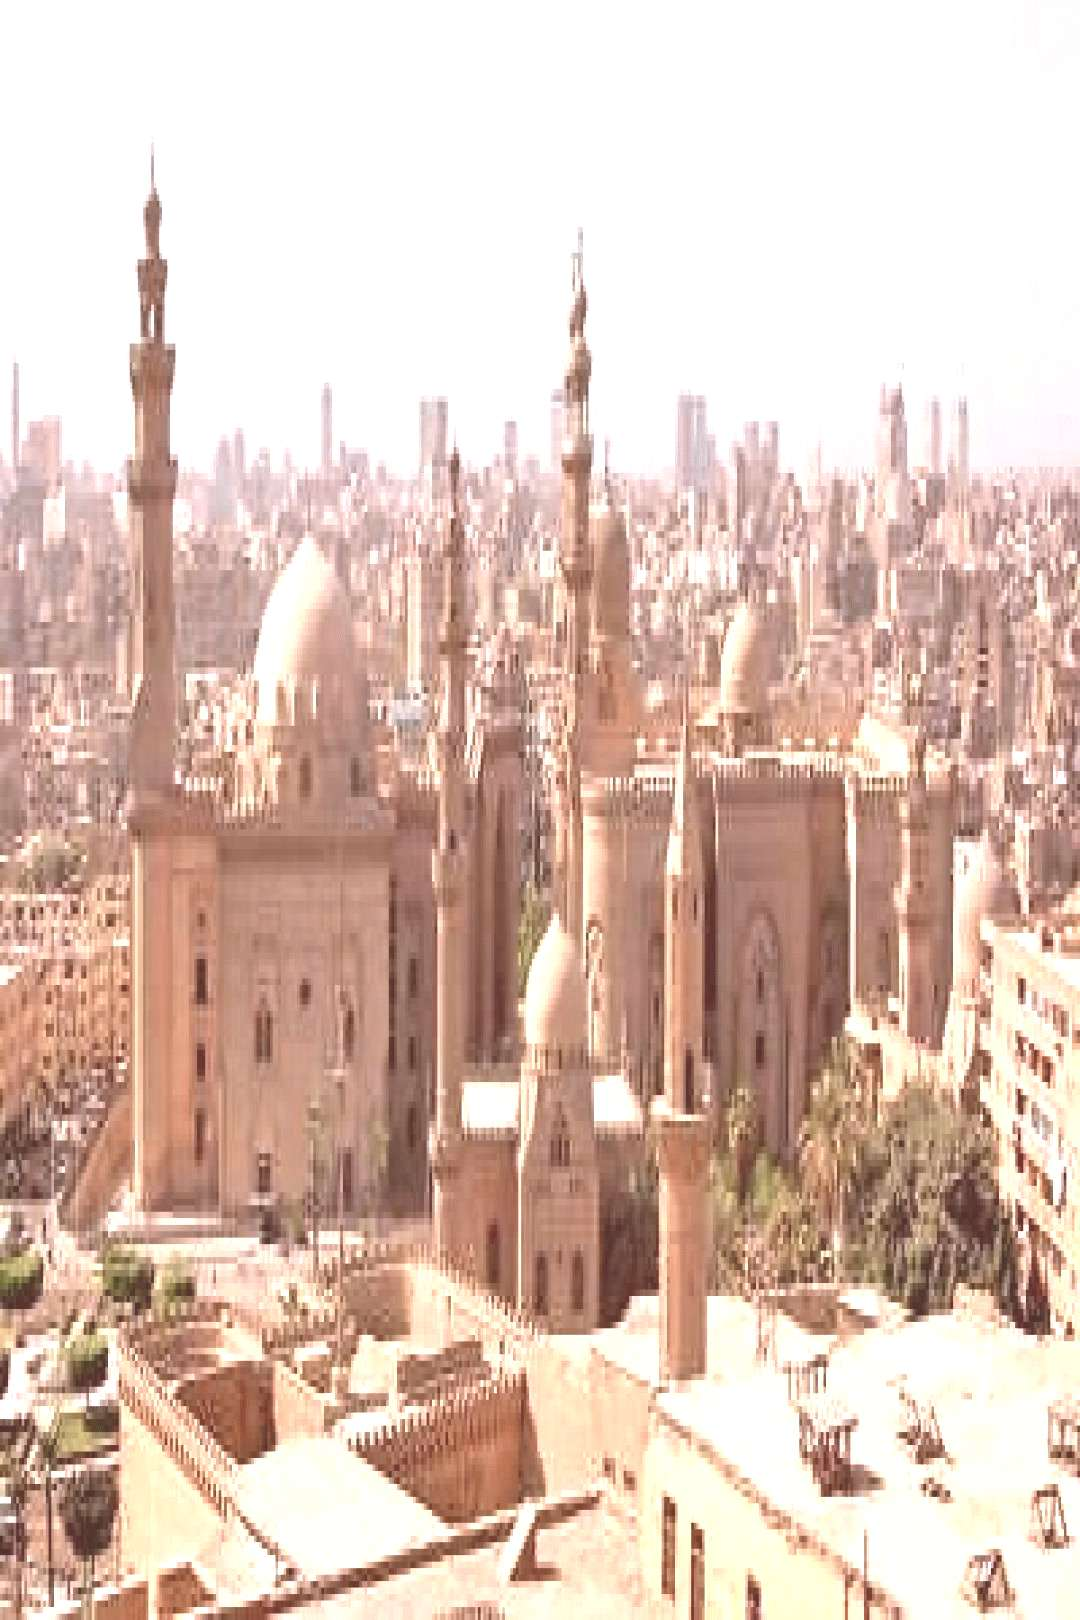 CAIRO EGYPT SKYLINE GLOSSY POSTER PICTURE PHOTO PRINT aerial view pyramids 3539 ebay link CAIRO EGY